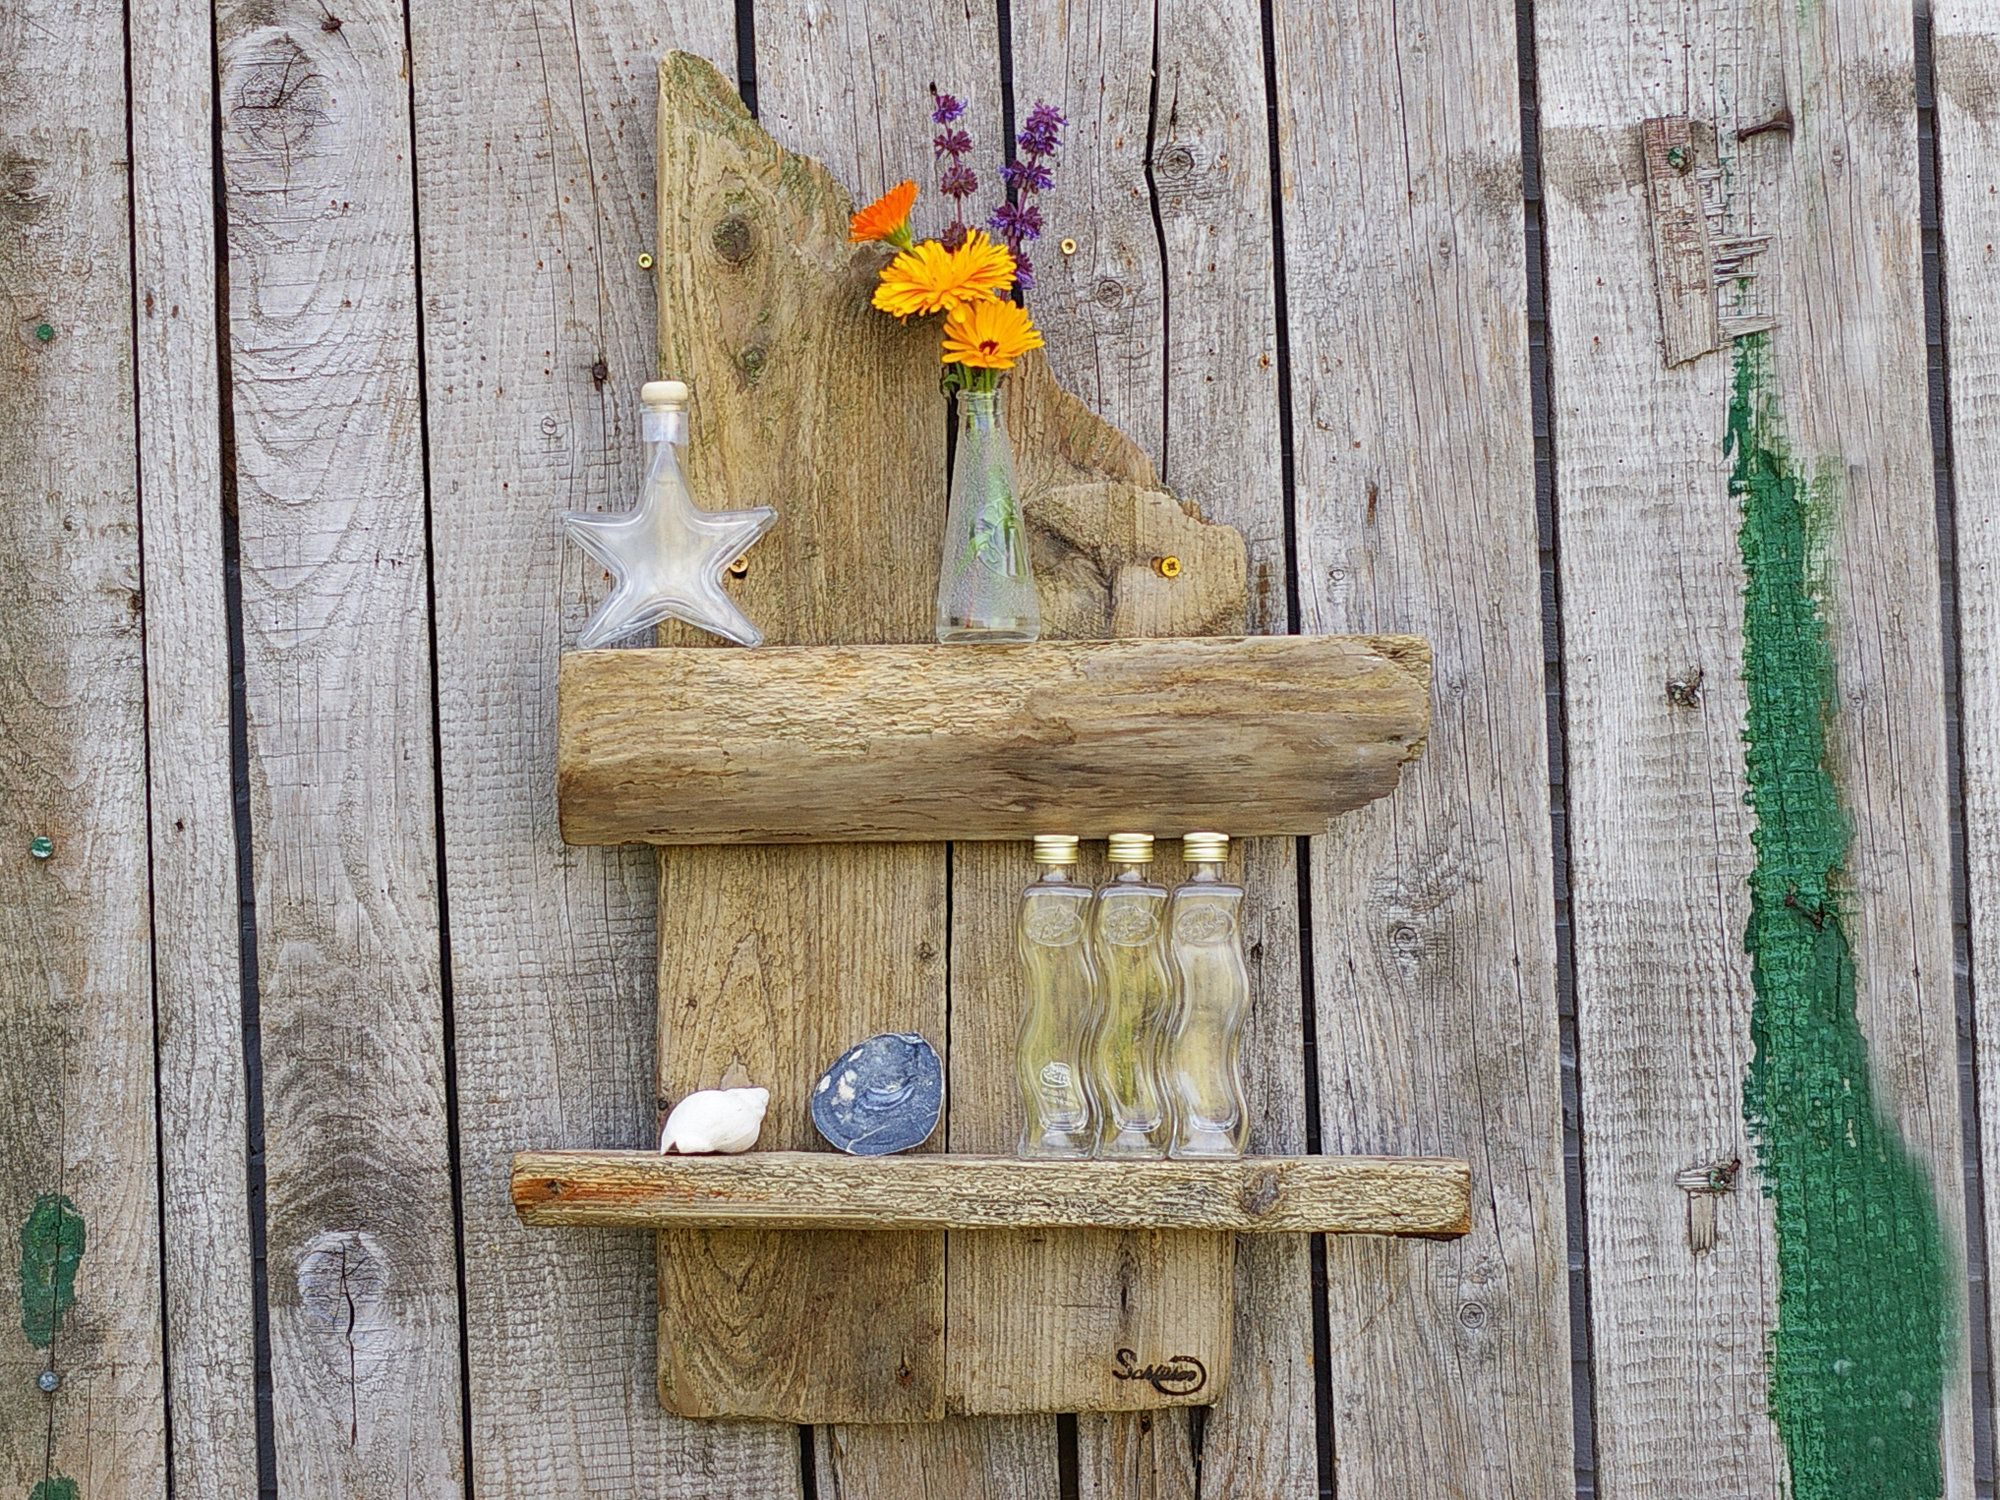 Bilderleiste Treibholz Driftwood Shelf Wood Shelf Shelf Driftwood Furniture